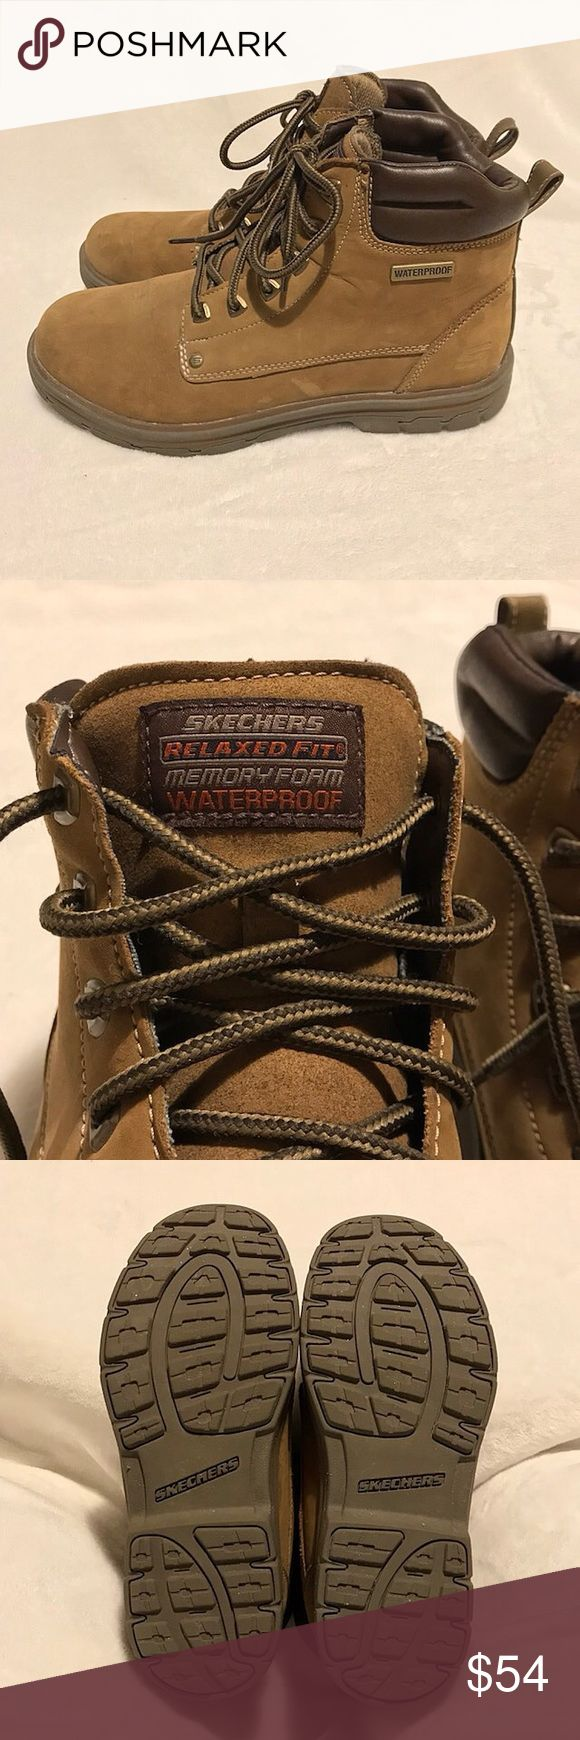 """Men's Relaxed Fit Memory Foam Skechers Work Boots Men's Skechers relaxed fit work boots with memory foam insole. Size 8.5. Light brown/tan color. Waterproof leather and padded collar. Lace up with durable metal rivets and flexible rubber traction outsole. Measures 5"""" down the back of the boot and 6"""" down the side. Scuff mark on the front of the right boot as shown in pics. No other flaws or defects. Durable and roomy. Skechers Shoes Boots"""